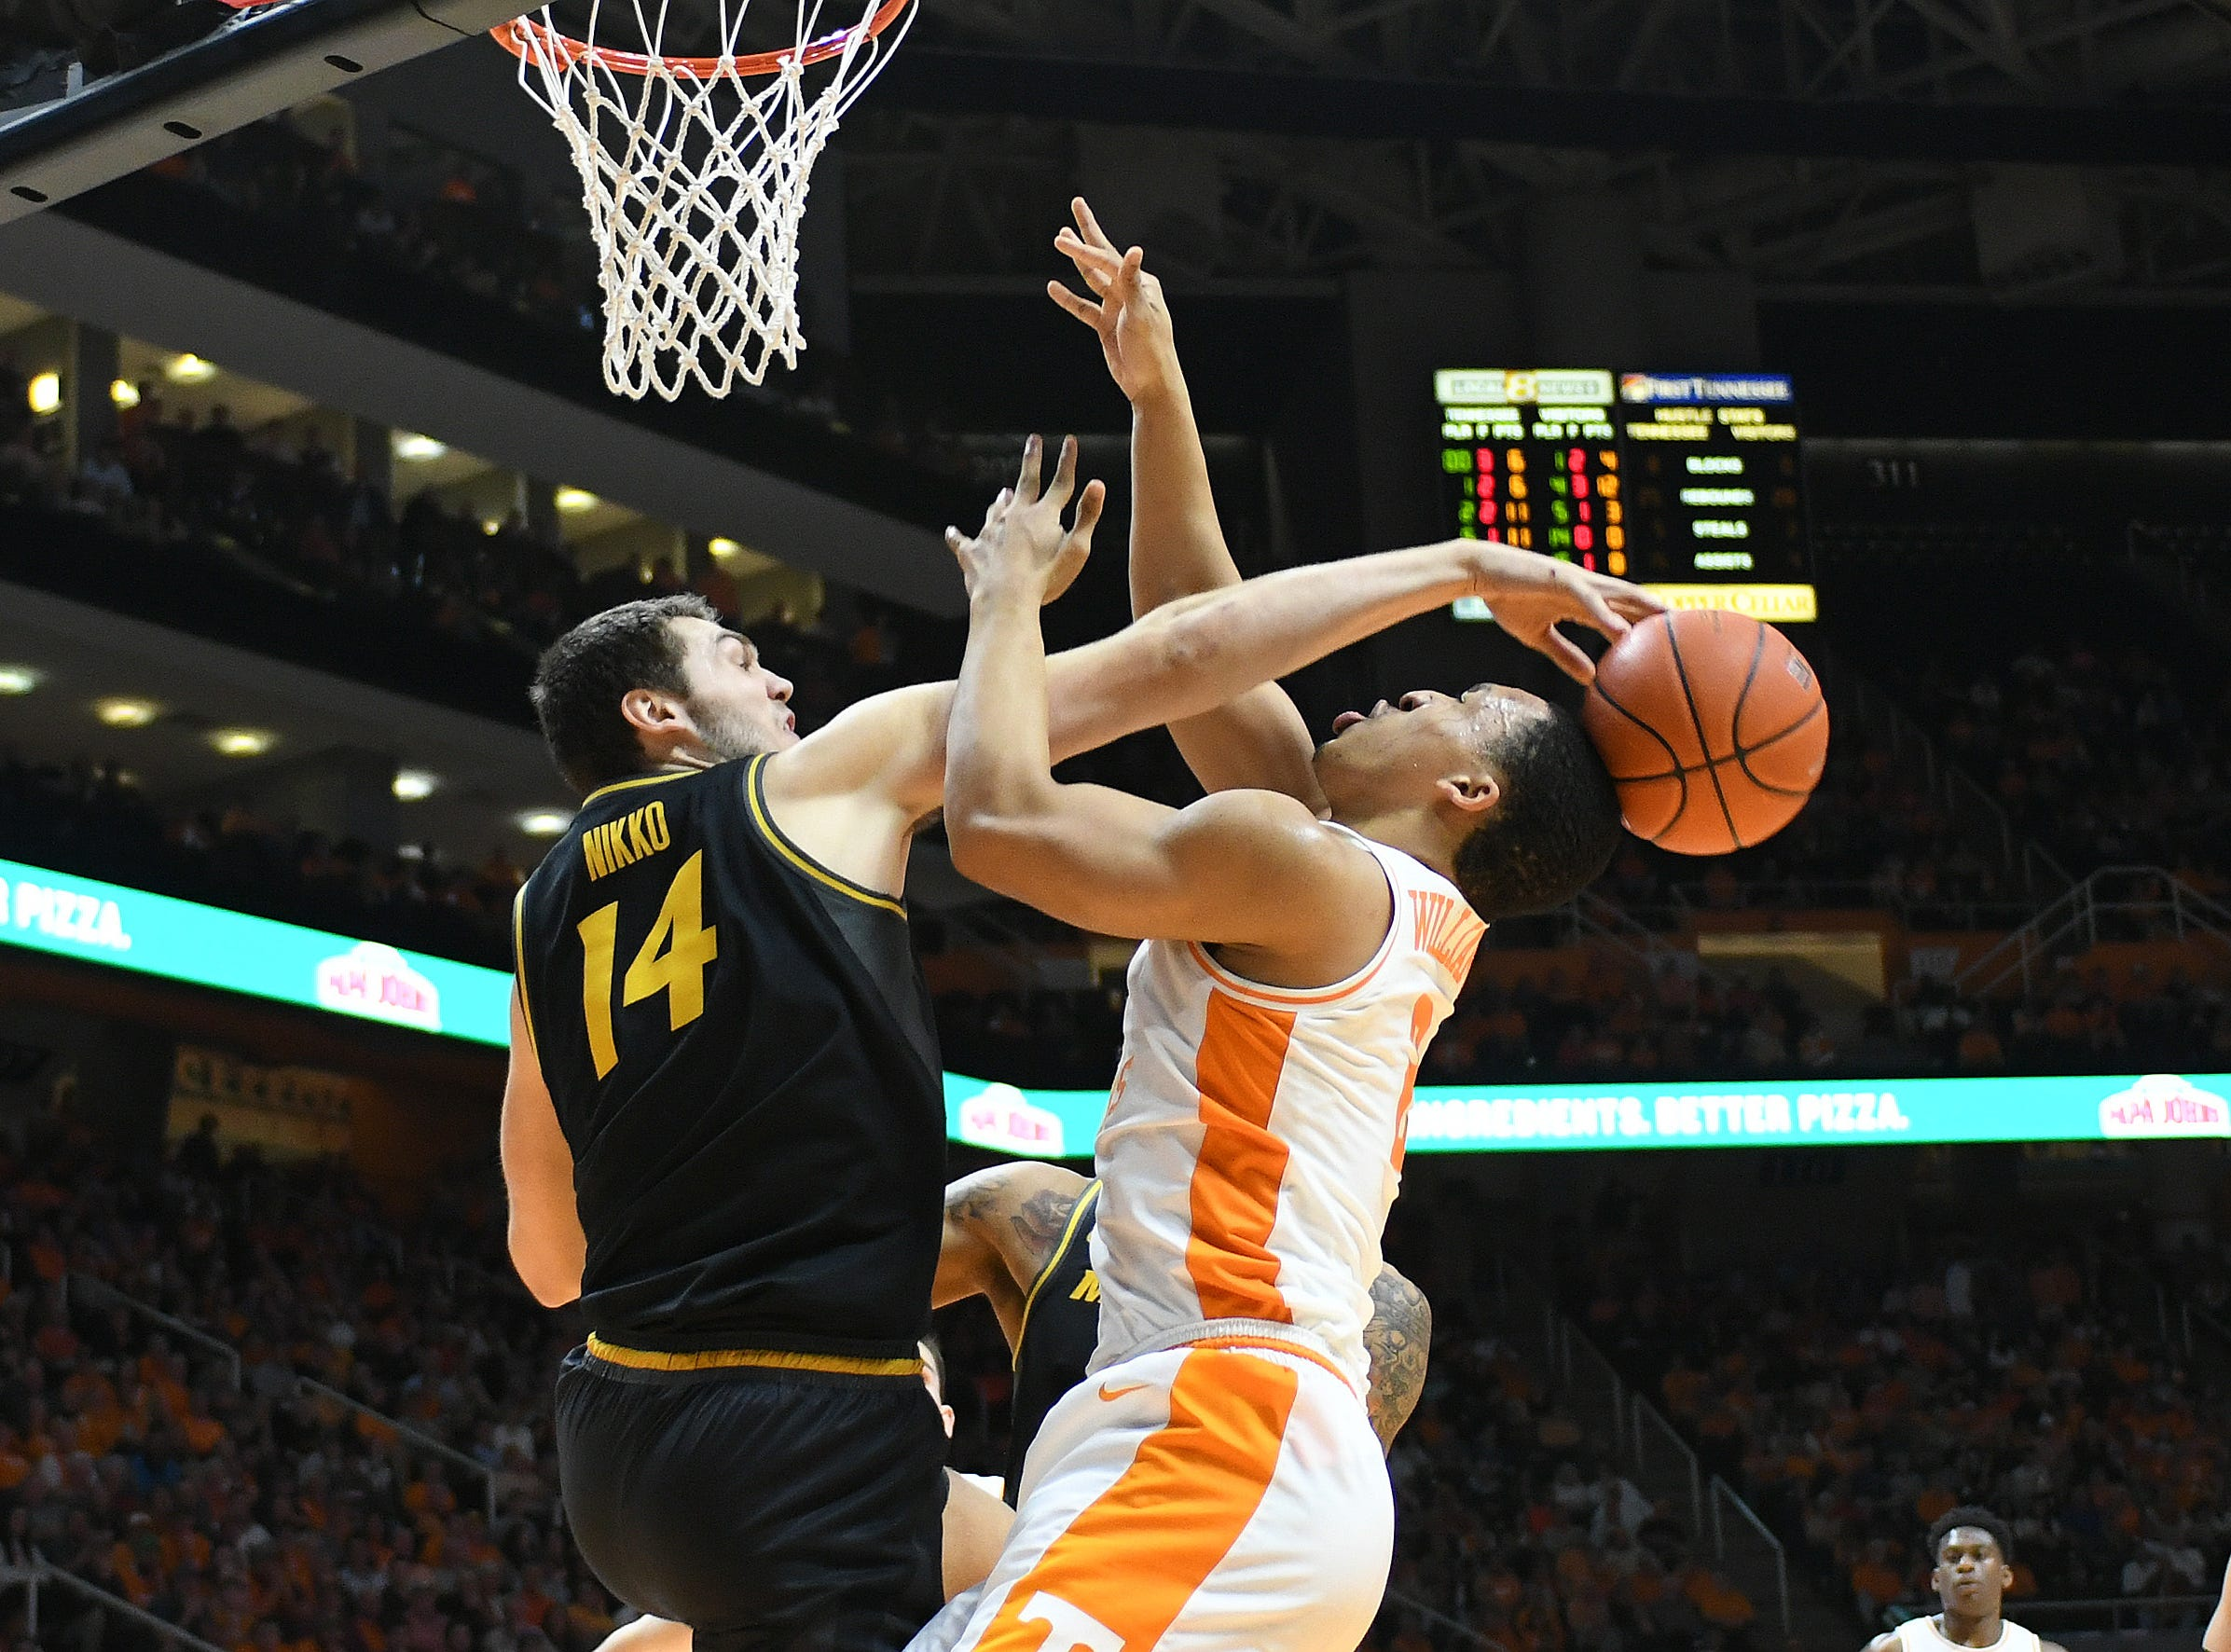 Feb. 5: Missouri Tigers forward Reed Nikko (14) blocks a shot by Tennessee Volunteers forward Grant Williams (2) during the second half at Thompson-Boling Arena.